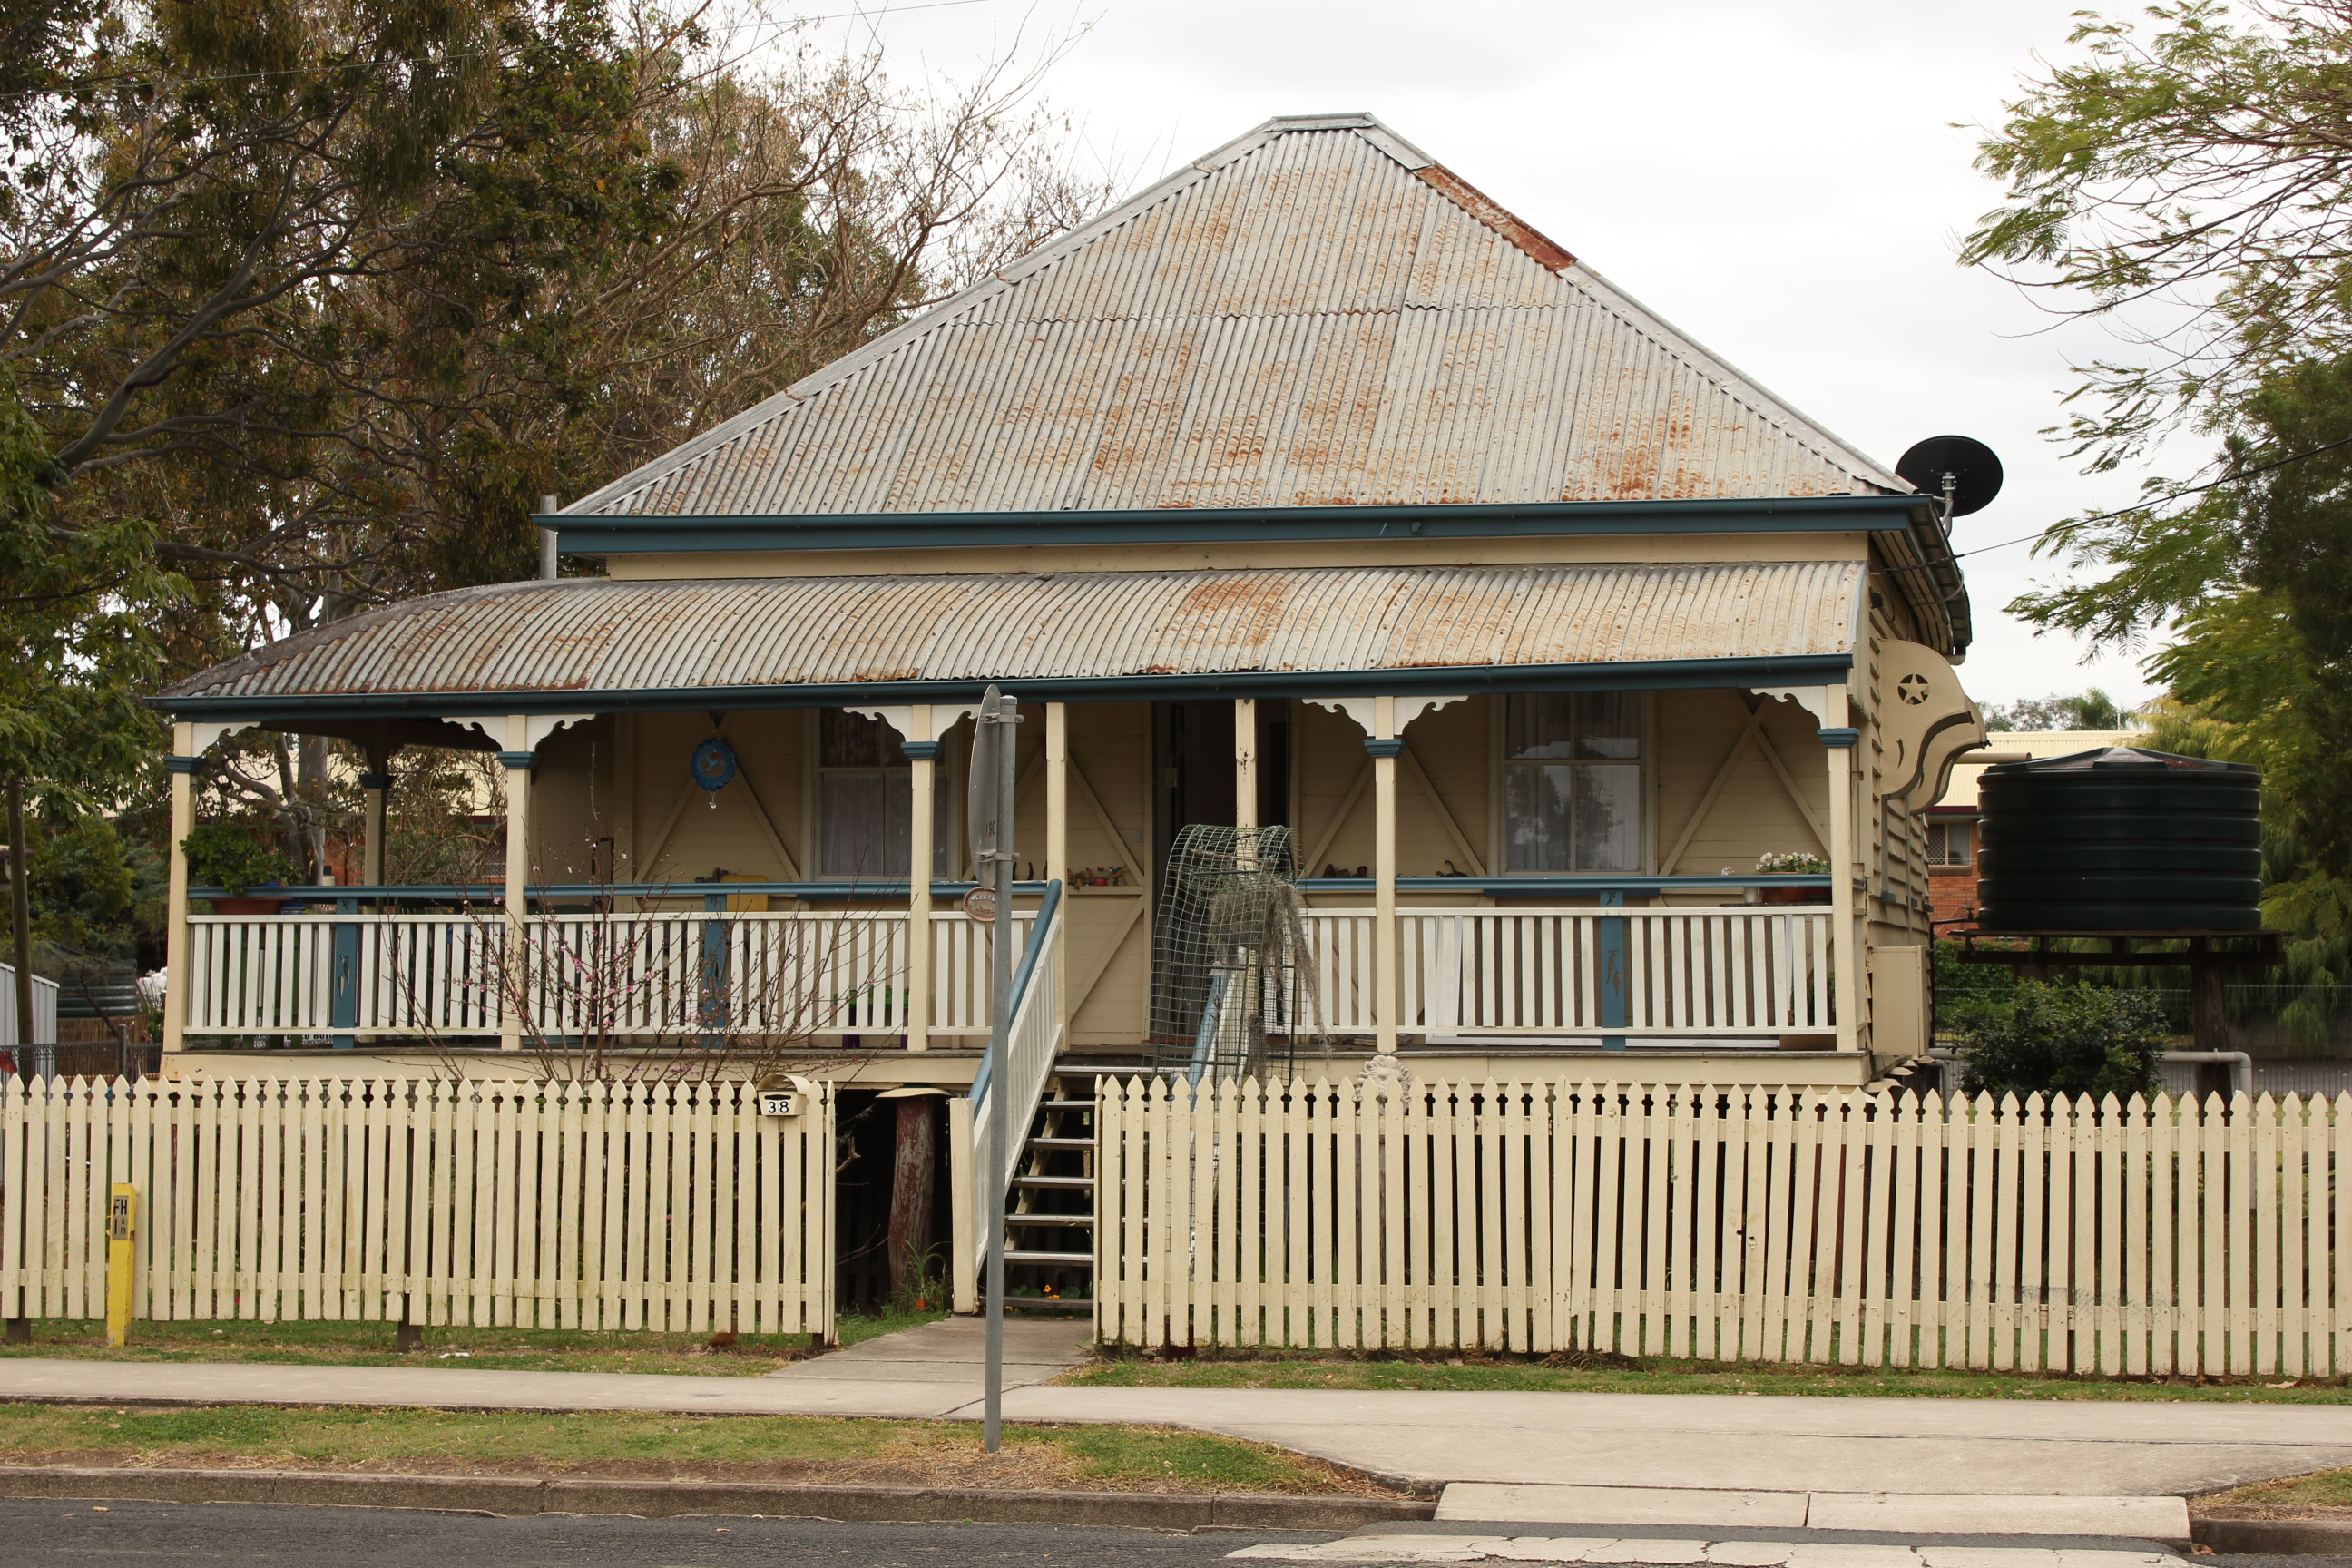 Design your own queenslander home design your own home for Design own house